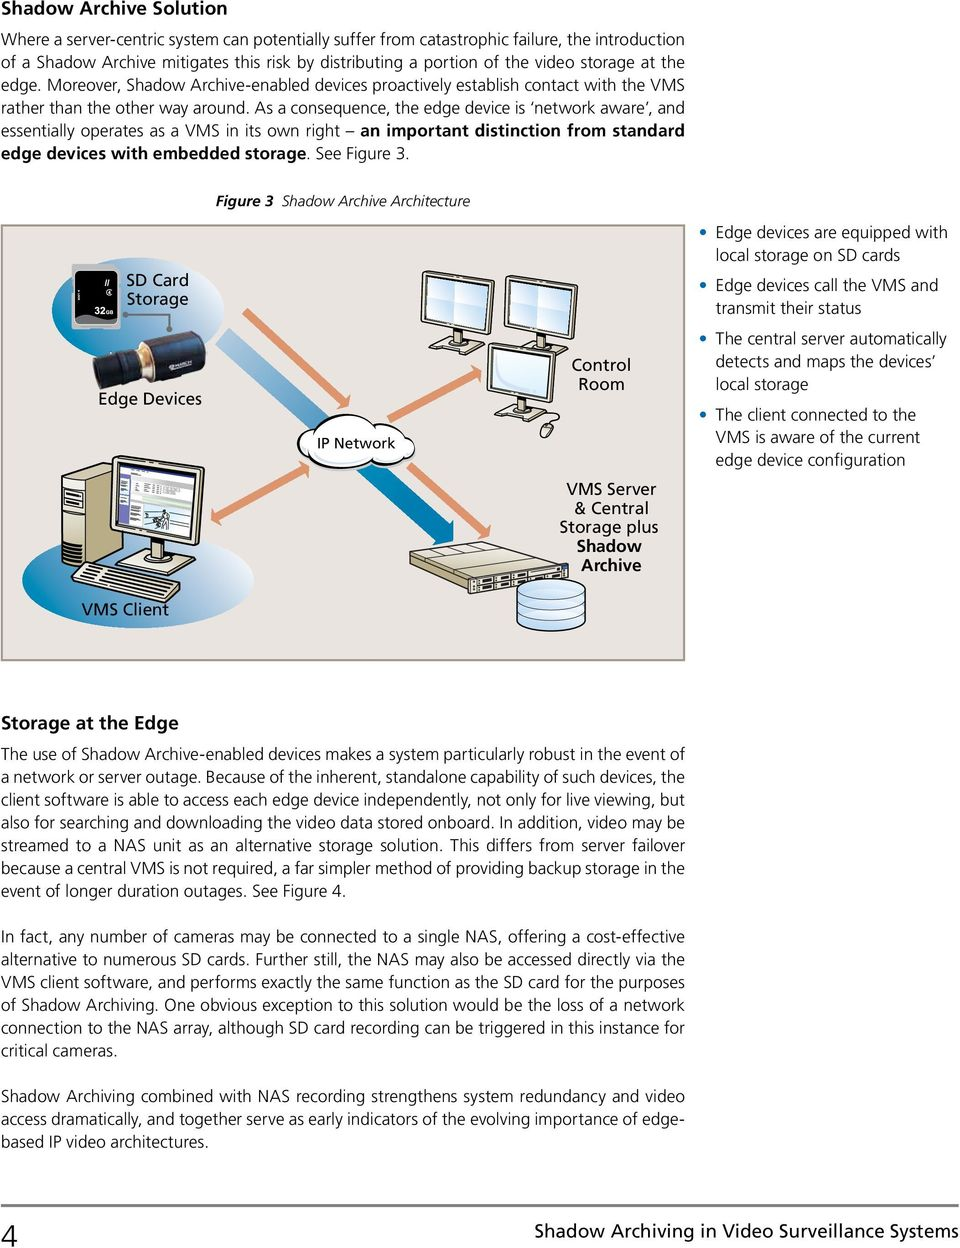 As a consequence, the edge device is network aware, and essentially operates as a VMS in its own right an important distinction from standard edge devices with embedded storage. See Figure 3.